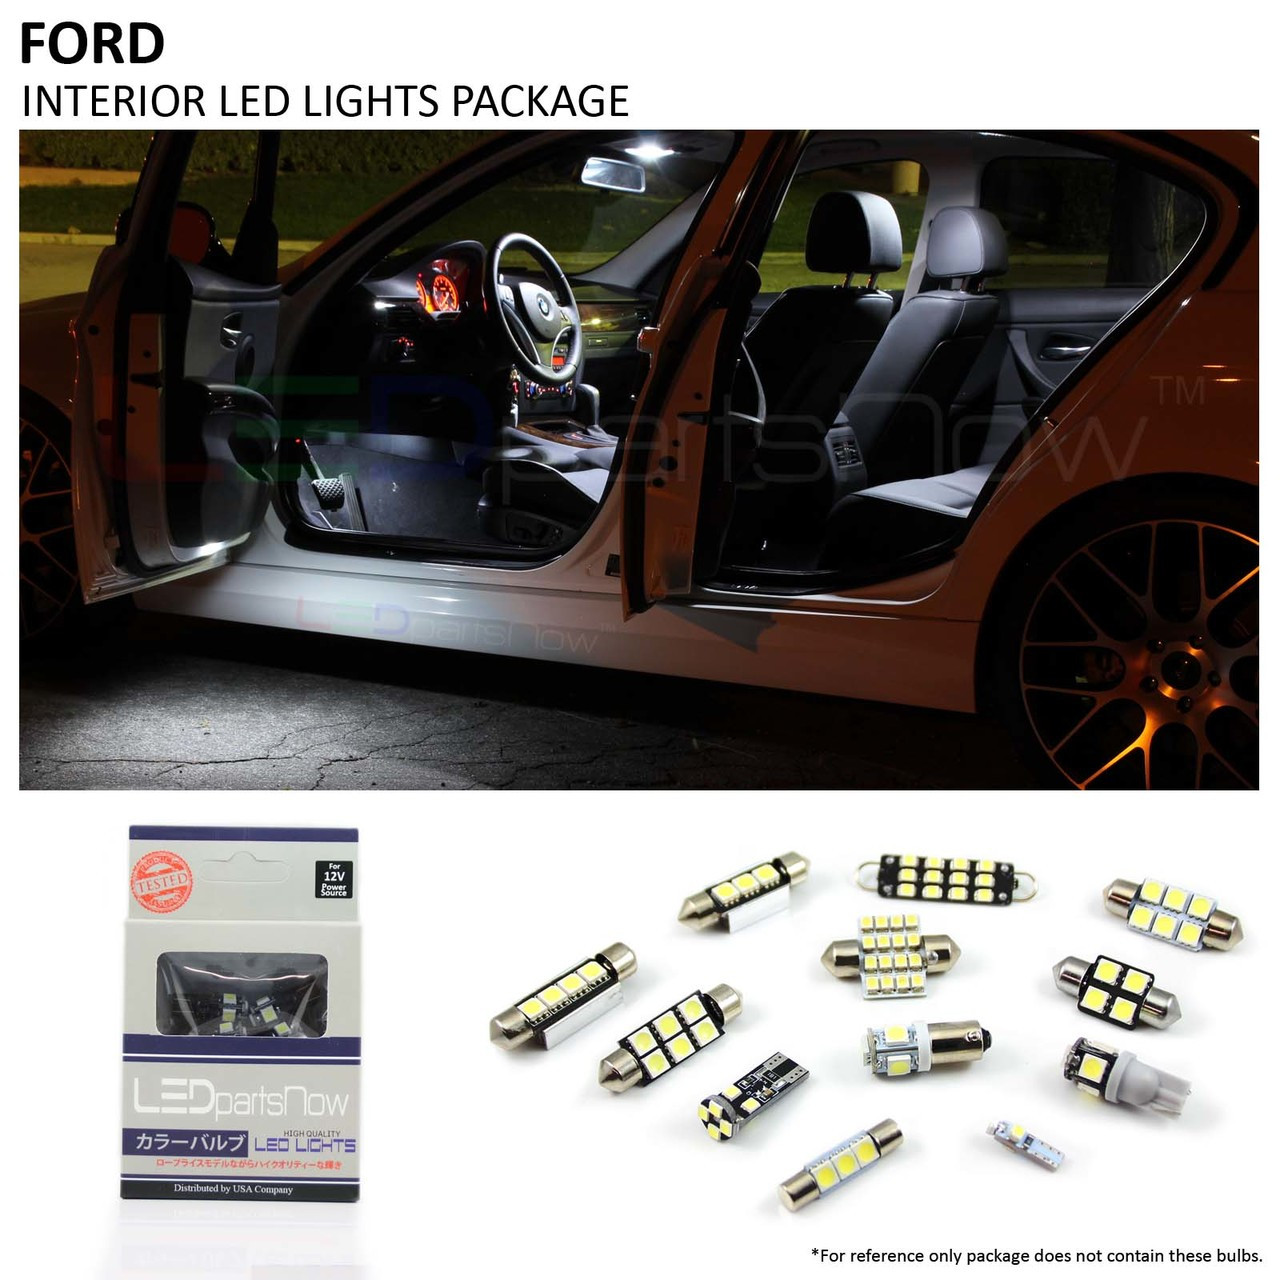 2010 2014 Ford Fusion Interior Led Lights Package